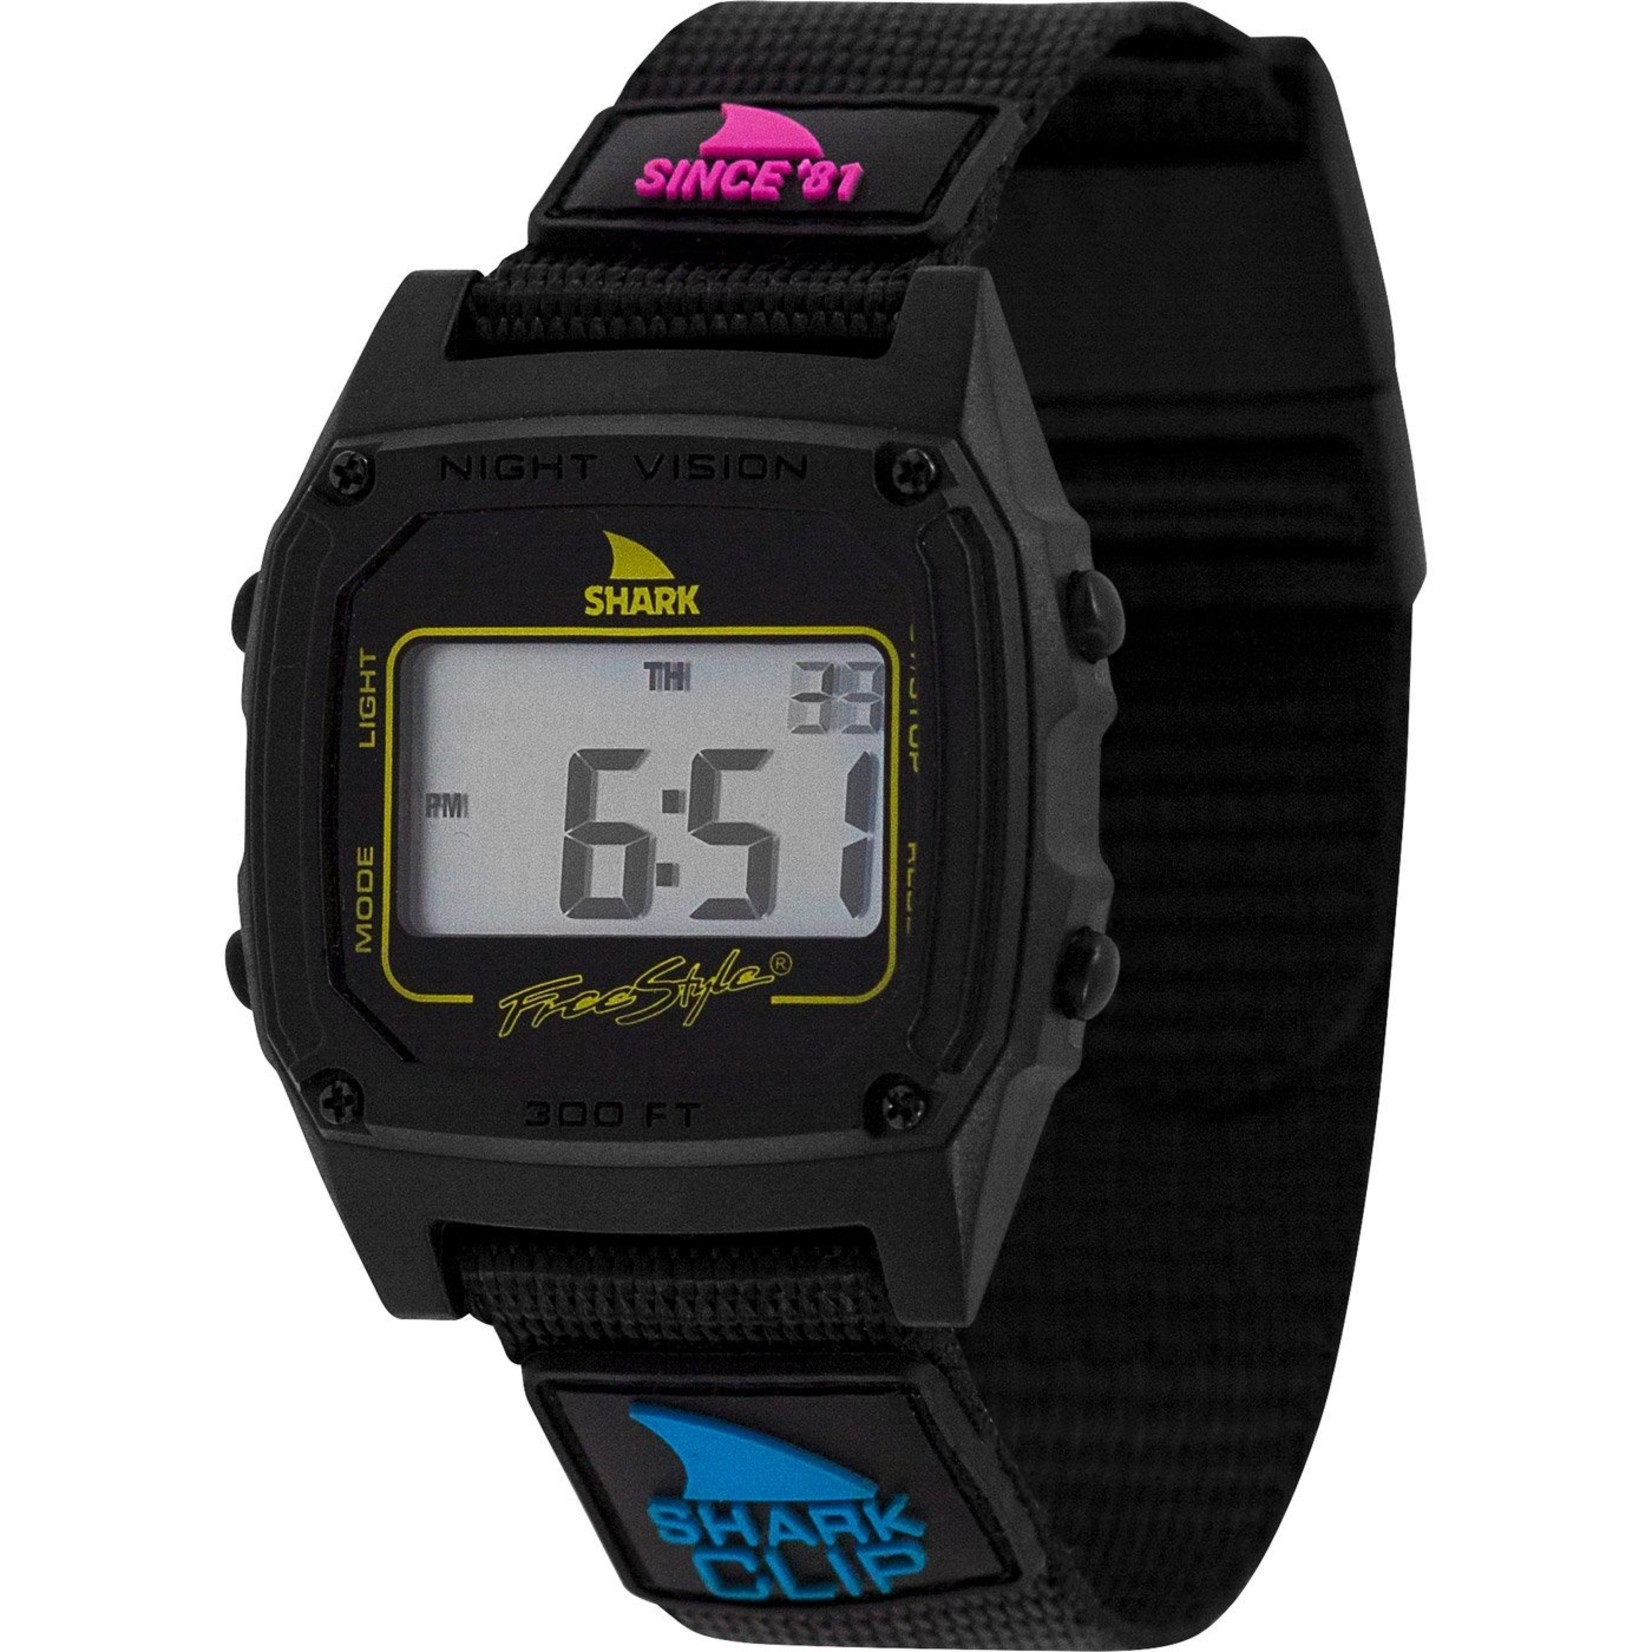 Freestyle Shark Classic Clip Since '81 Primary Blk